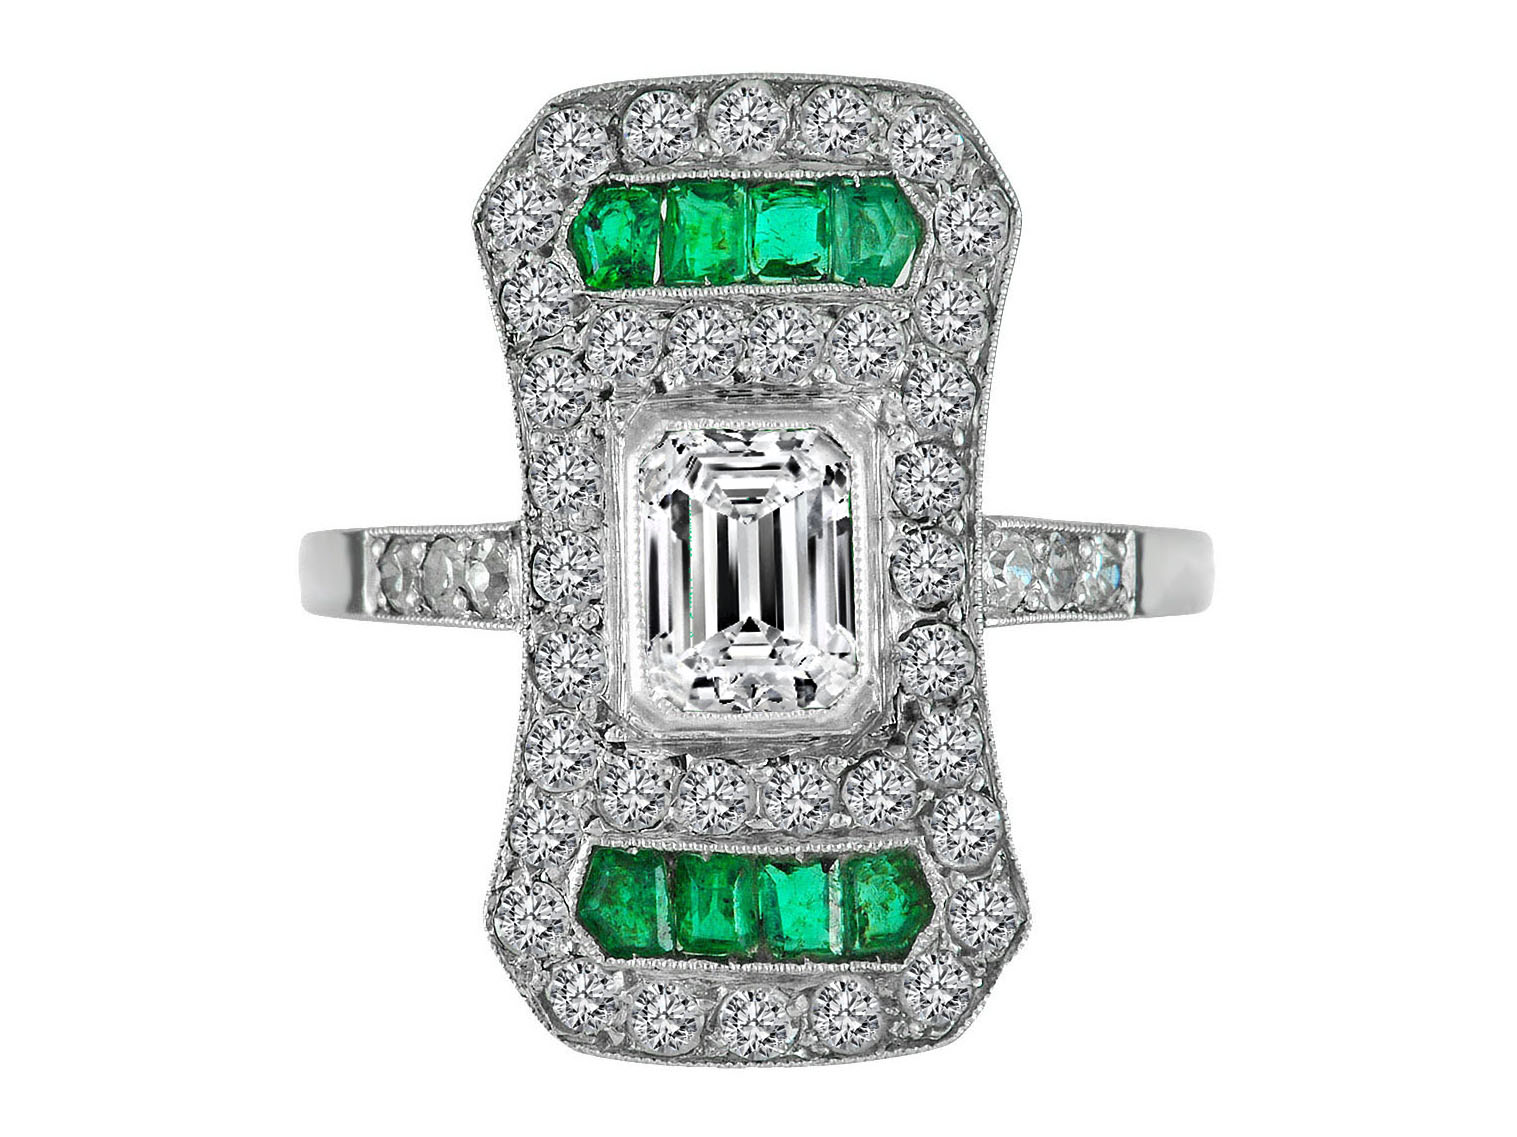 Emerald Cut Diamond Art Deco Engagement Ring